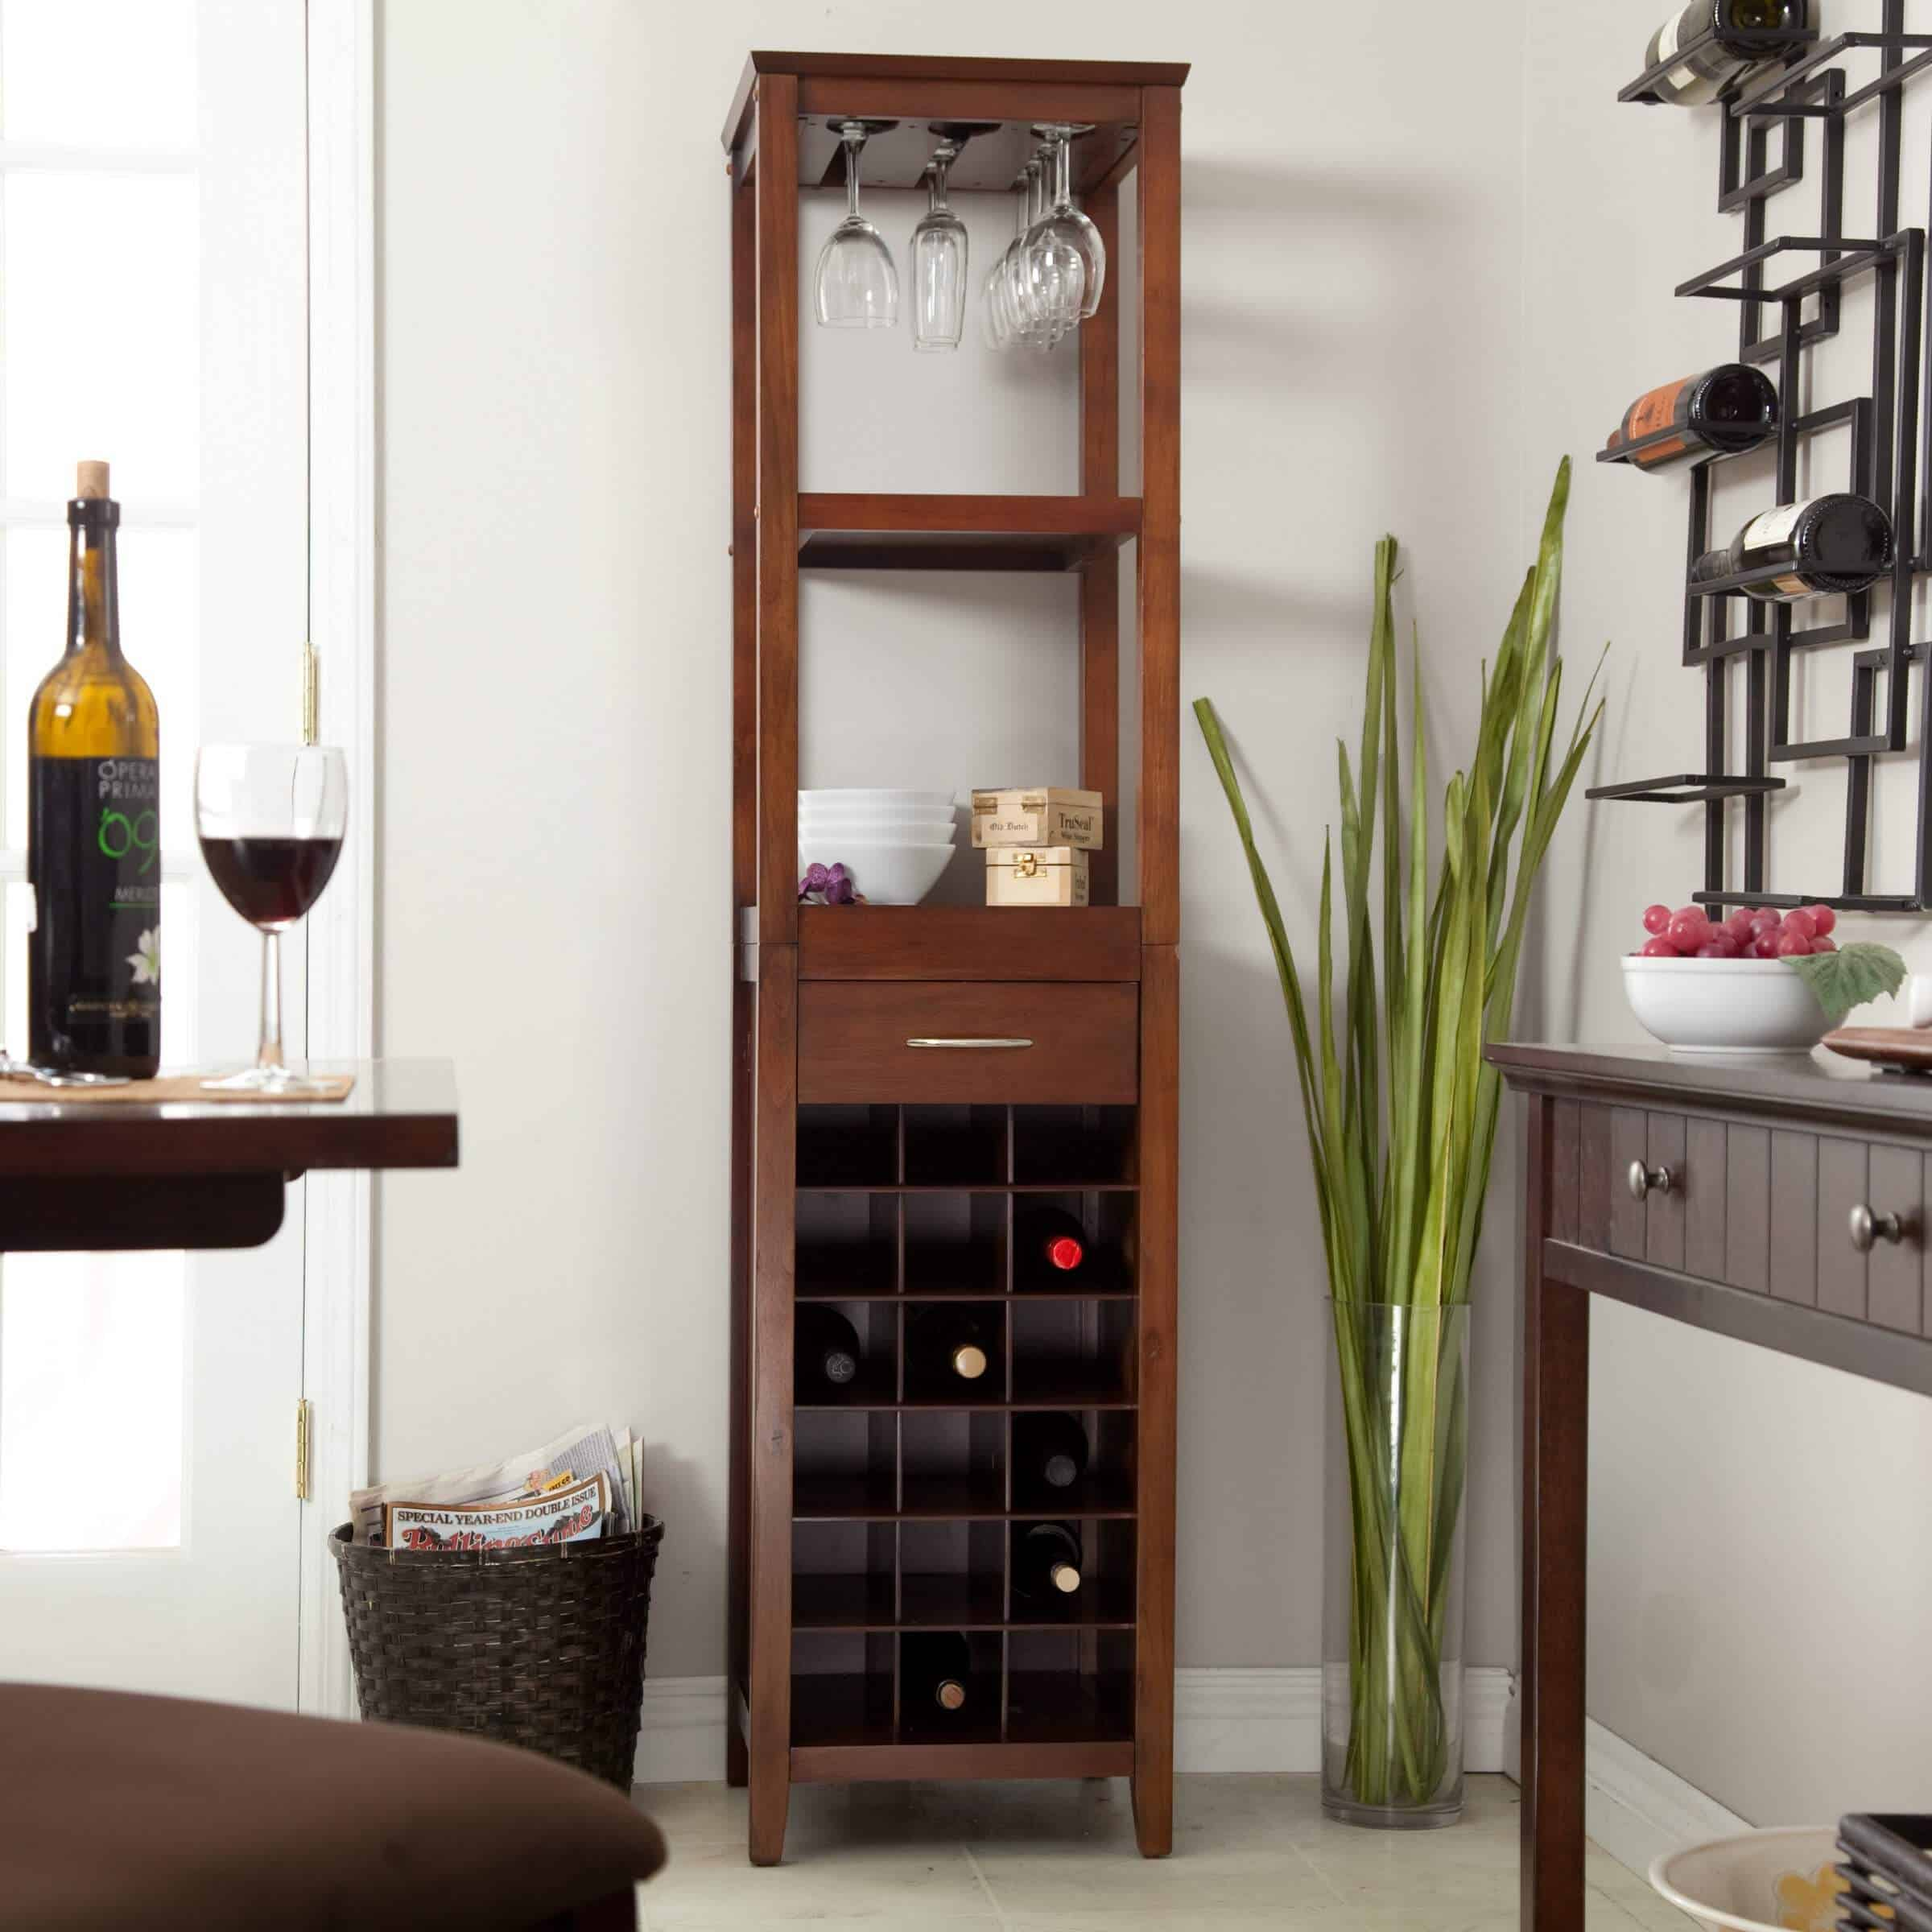 This wine tower can hold up to 18 bottles of wine, and has several shelves above to house wine glasses and decorative accents.